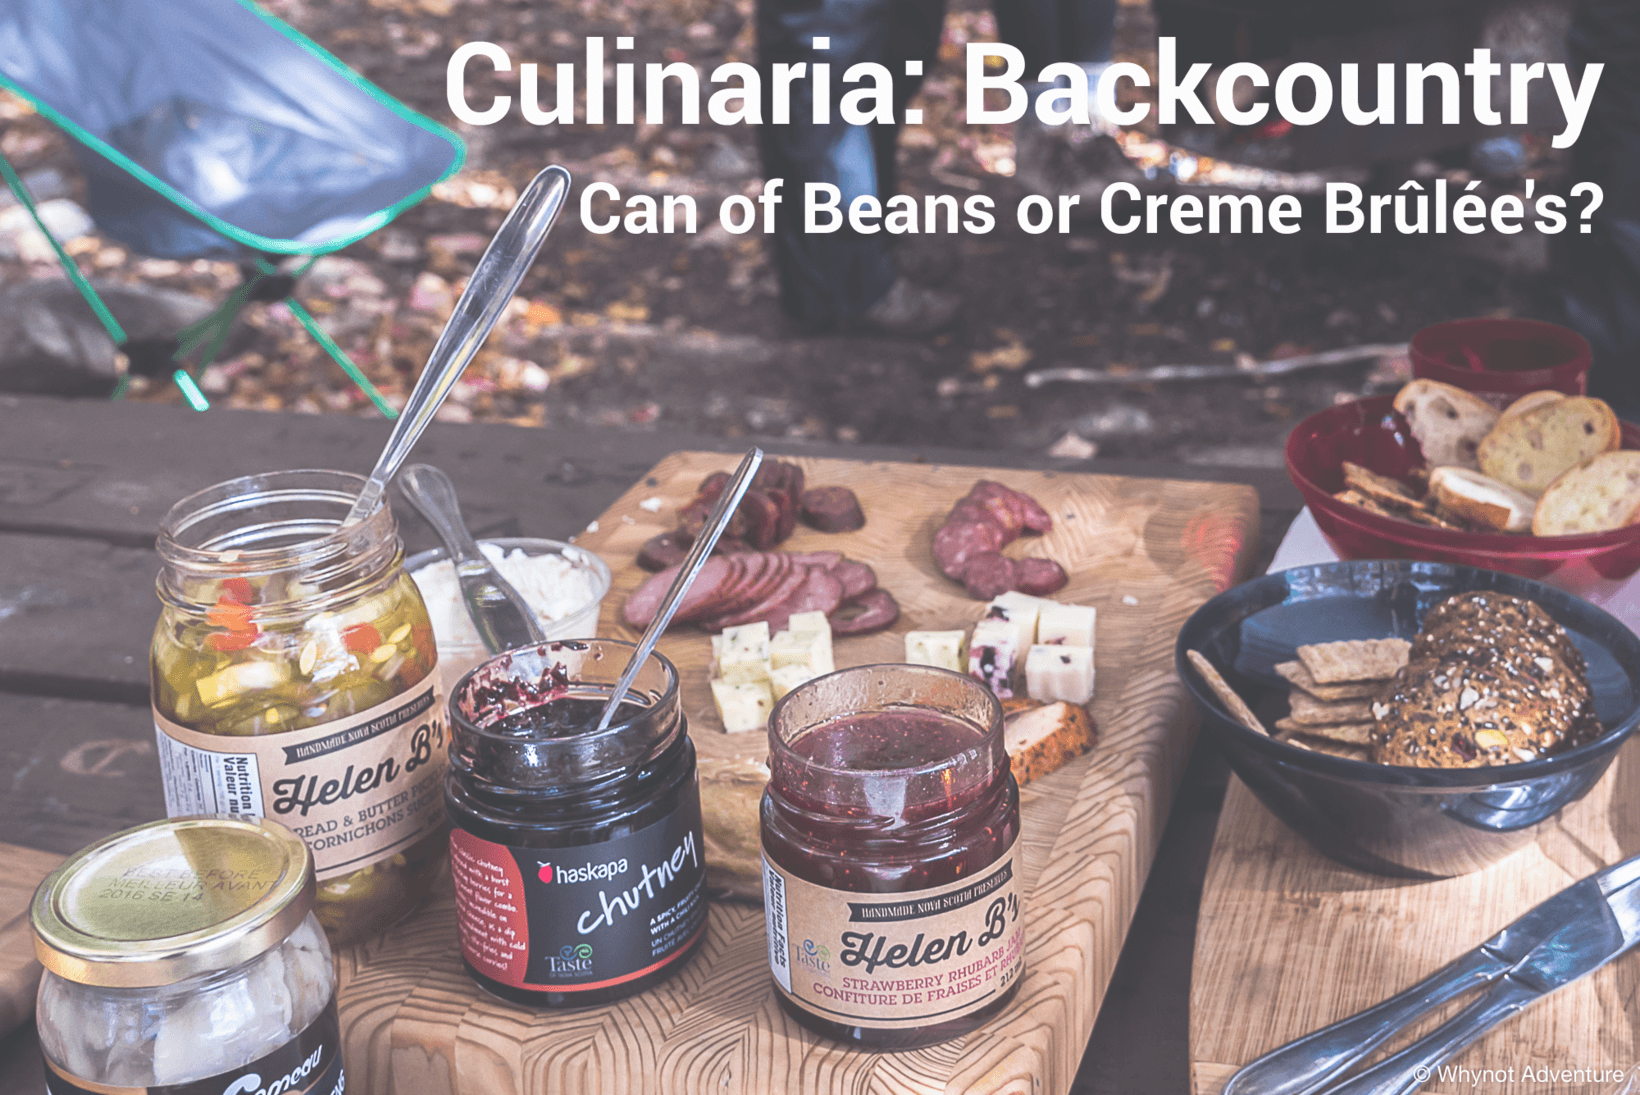 Culinaria Backcountry: Canned Beans or Creme Brûlée